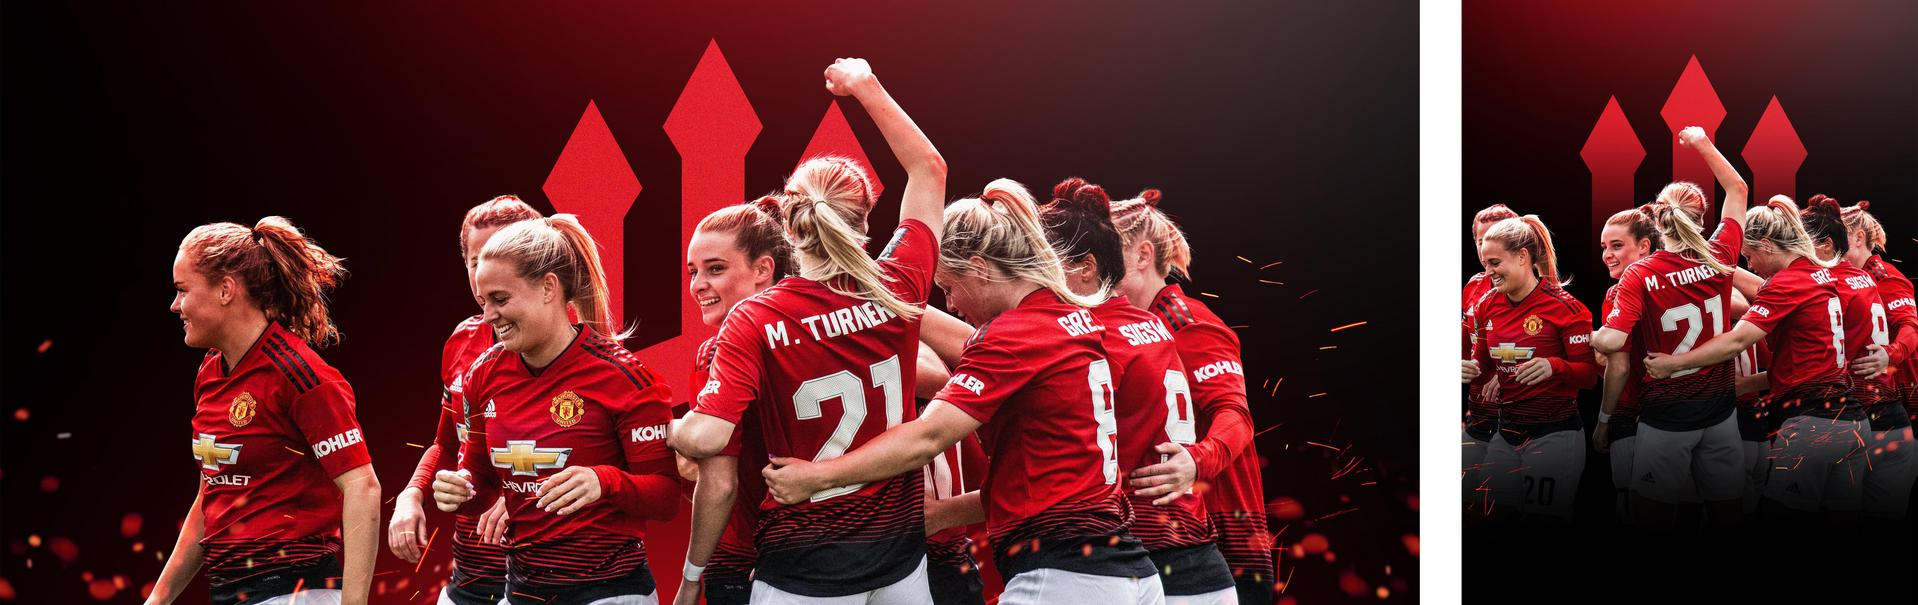 Manchester United Women celebration graphic